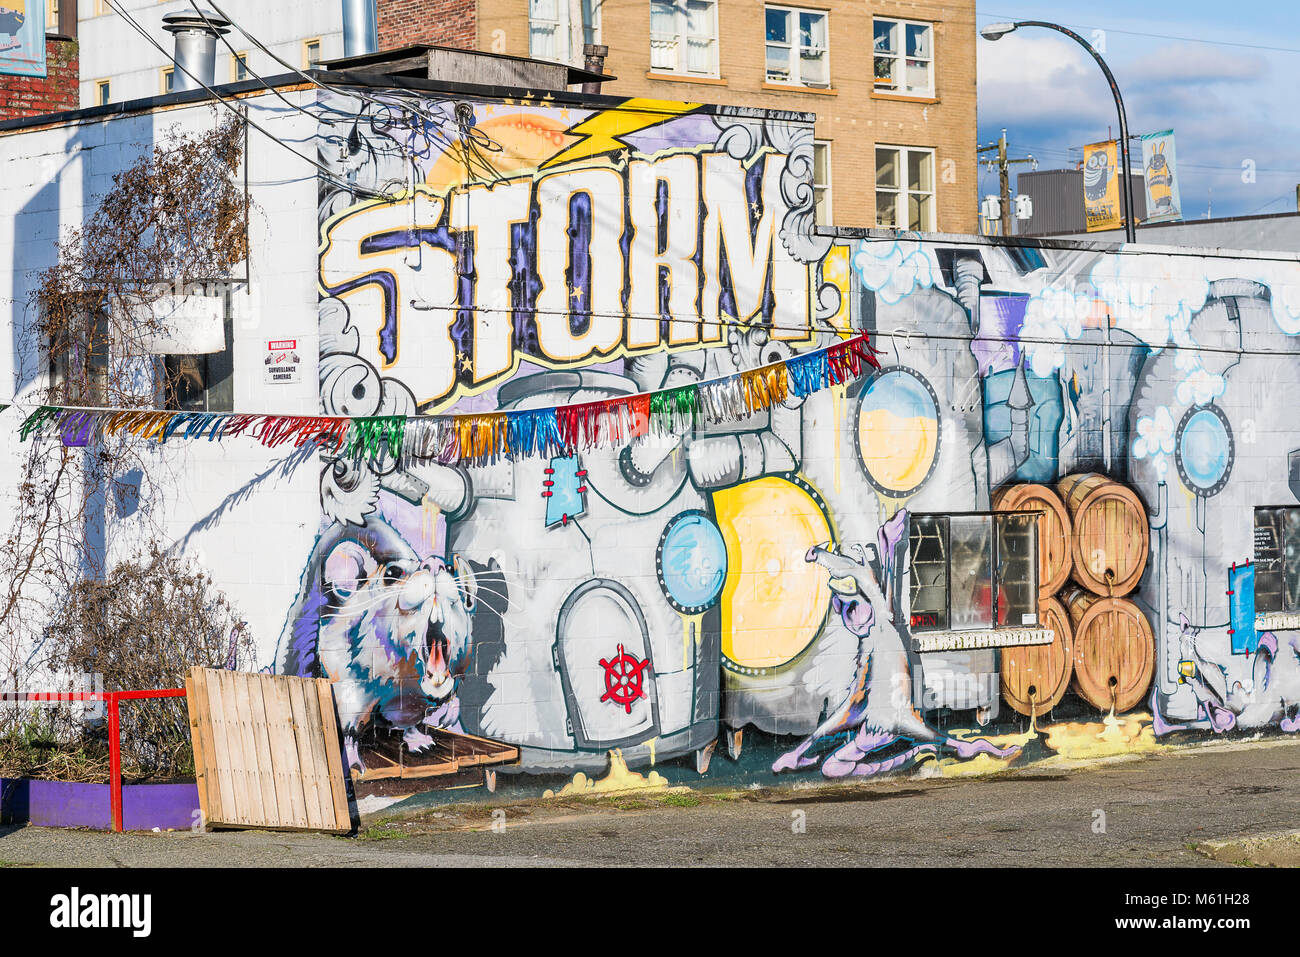 Storm Brewing Company, Commercial Drive, Vancouver, British Columbia, Canada - Stock Image